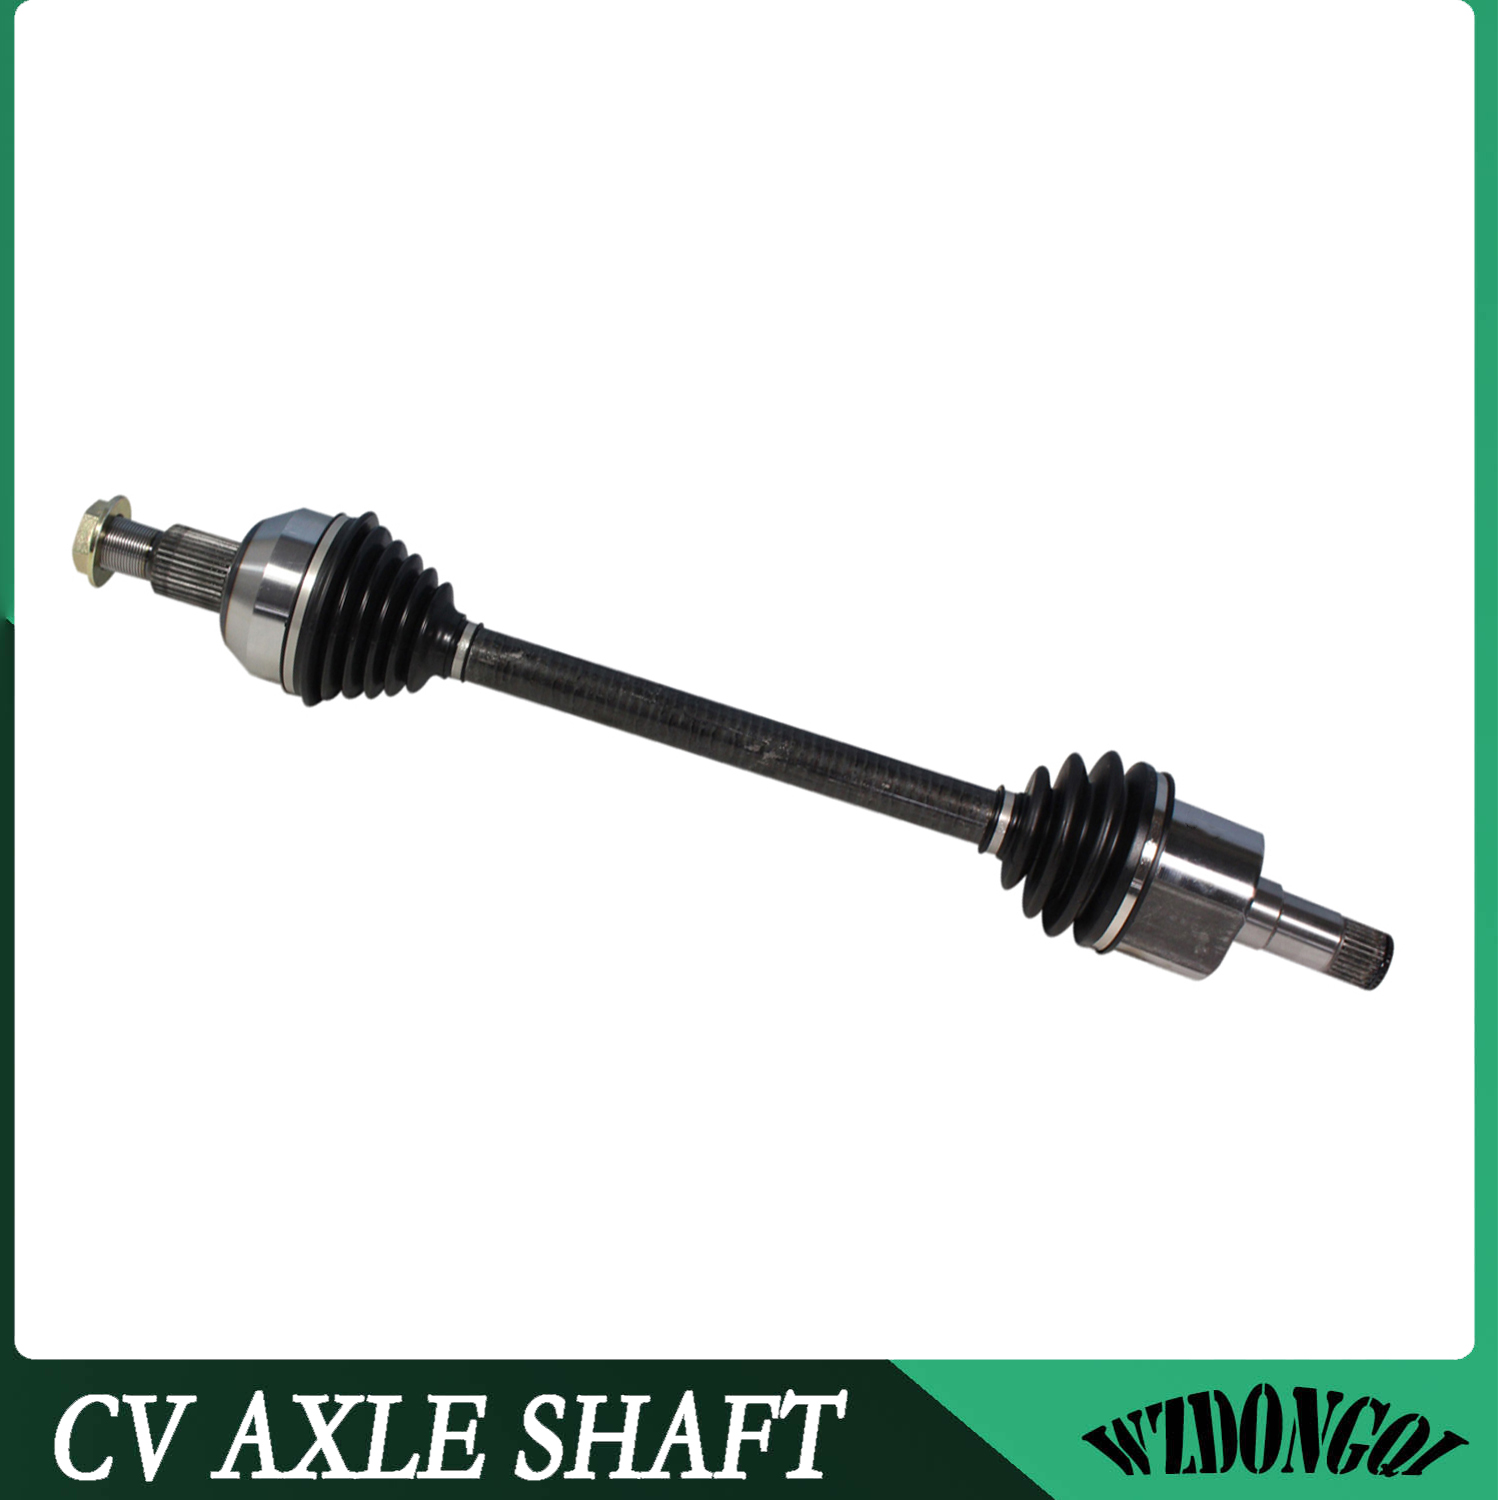 Rear Right CV Axle Joint Shaft For Enclave Traverse Acadia Outlook AWD V6 11-07